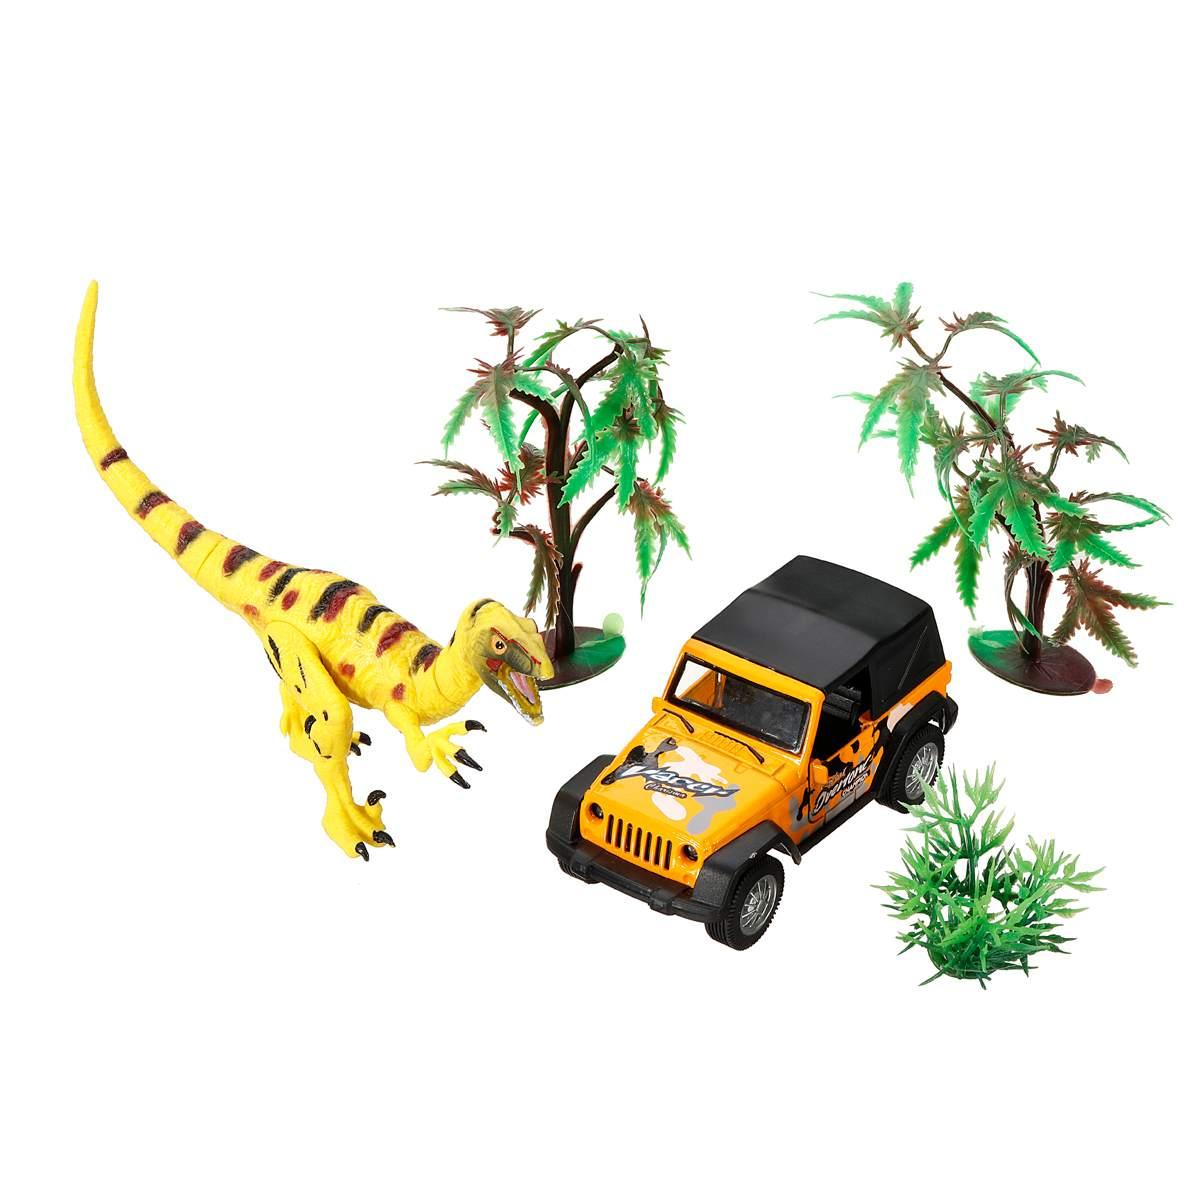 Dinosaur World Small Car Trailer Transporter Model Education Toy Set New Plastic Play Toys For Boys Kids Children gift